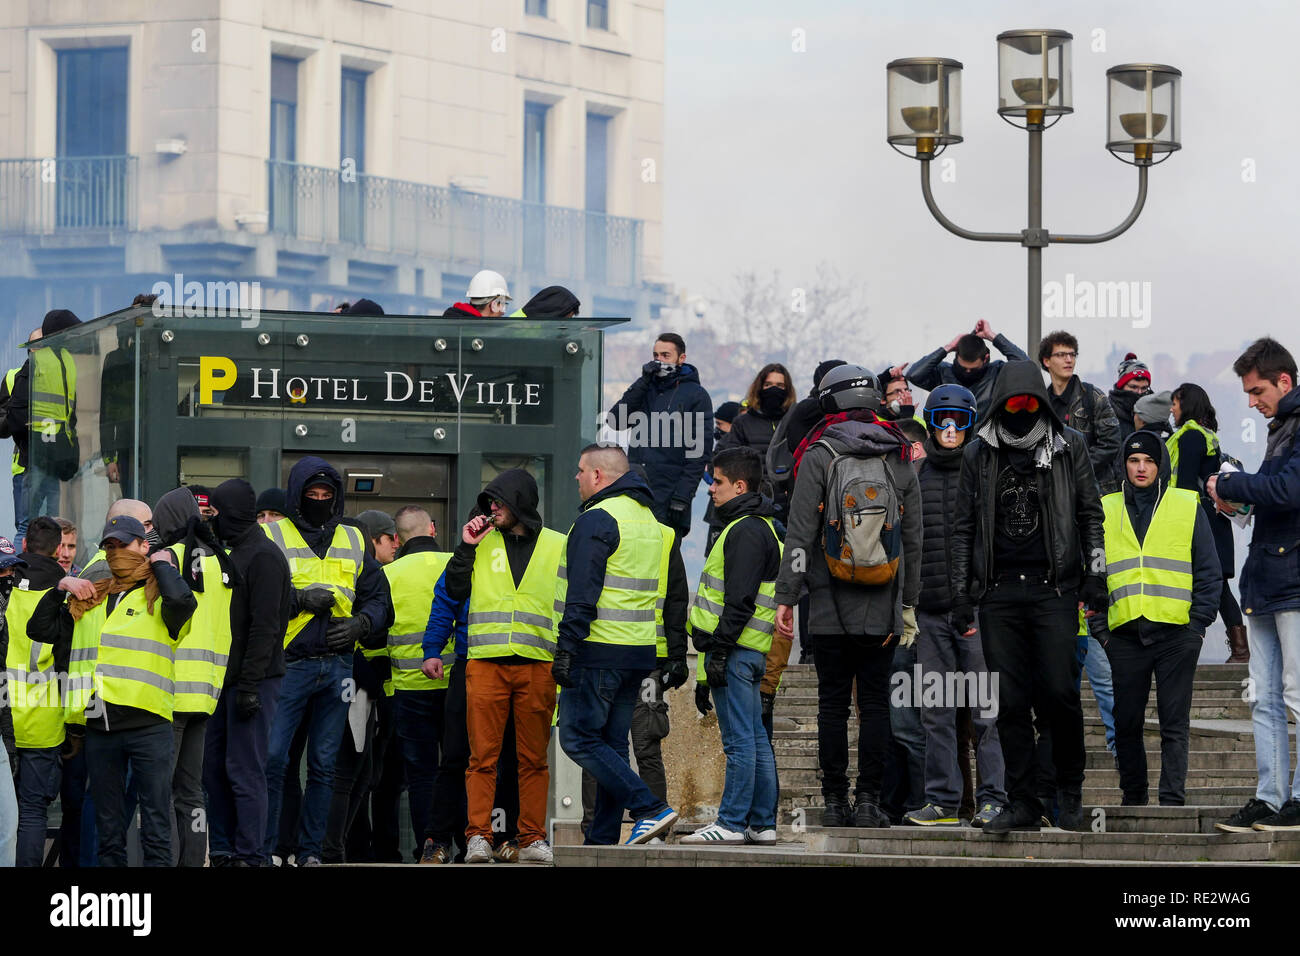 Lyon, France, January 19th 2019: Yellow jackets are seen in Lyon (Central-Eastern France) as they face riot police units on the occasion of the 10th day of protest against french goverment reform projetct. Credit Photo: Serge Mouraret/Alamy Live News - Stock Image